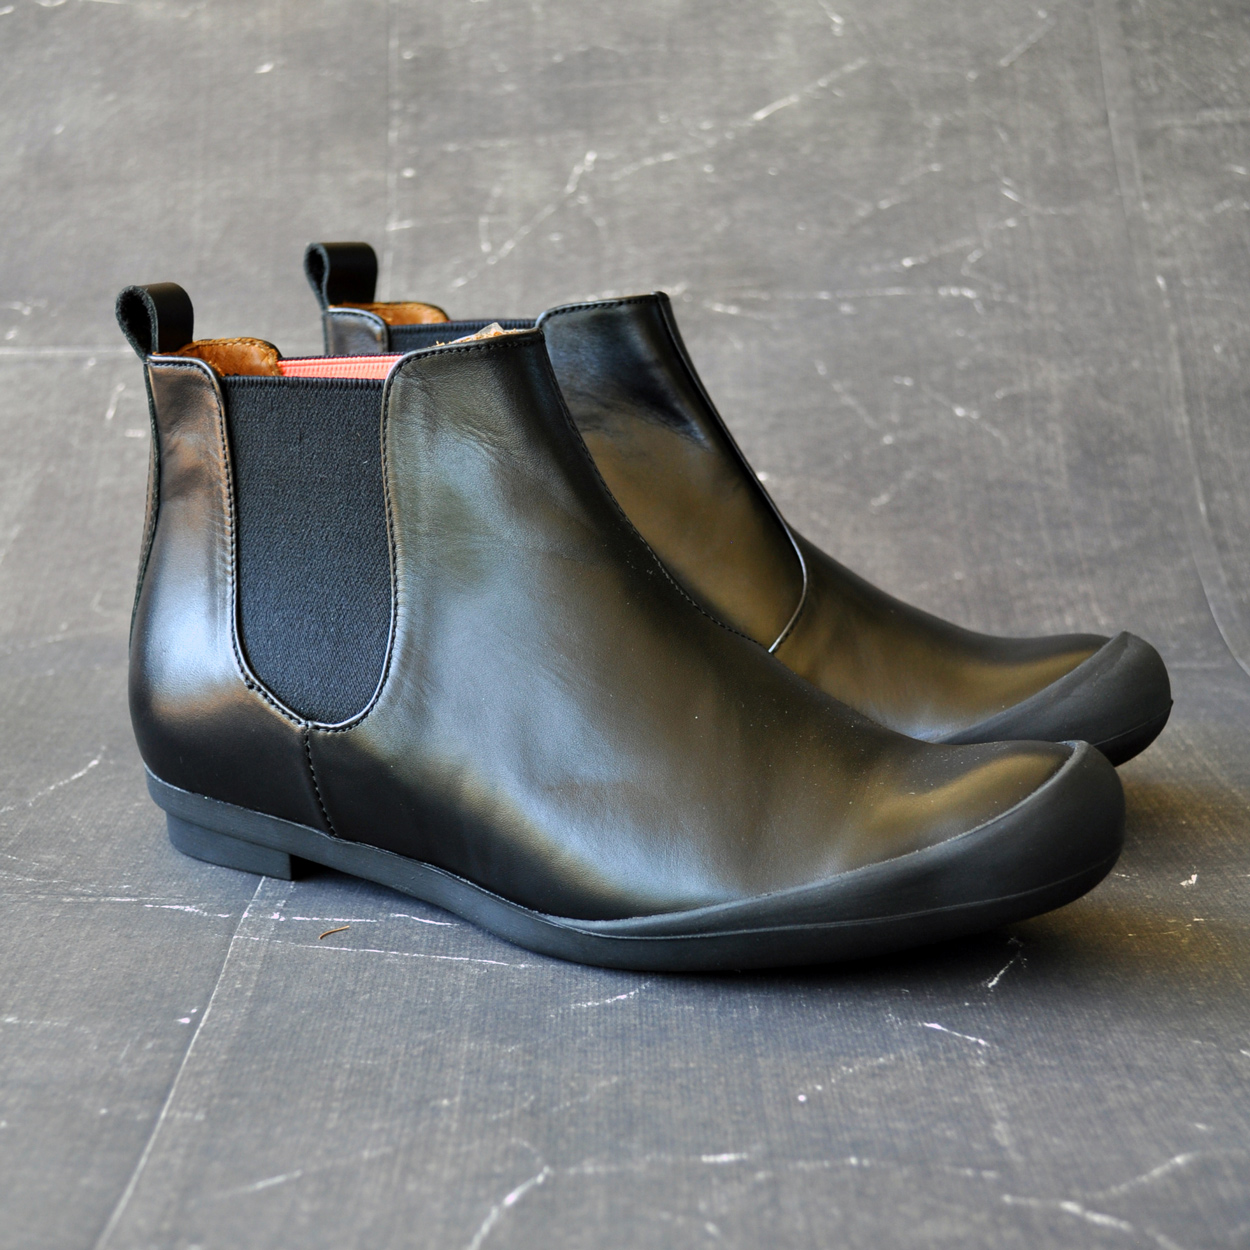 Cuir-confort-chaussure-Tracey-Neuls-Carouge-Geneve-boutique-mode